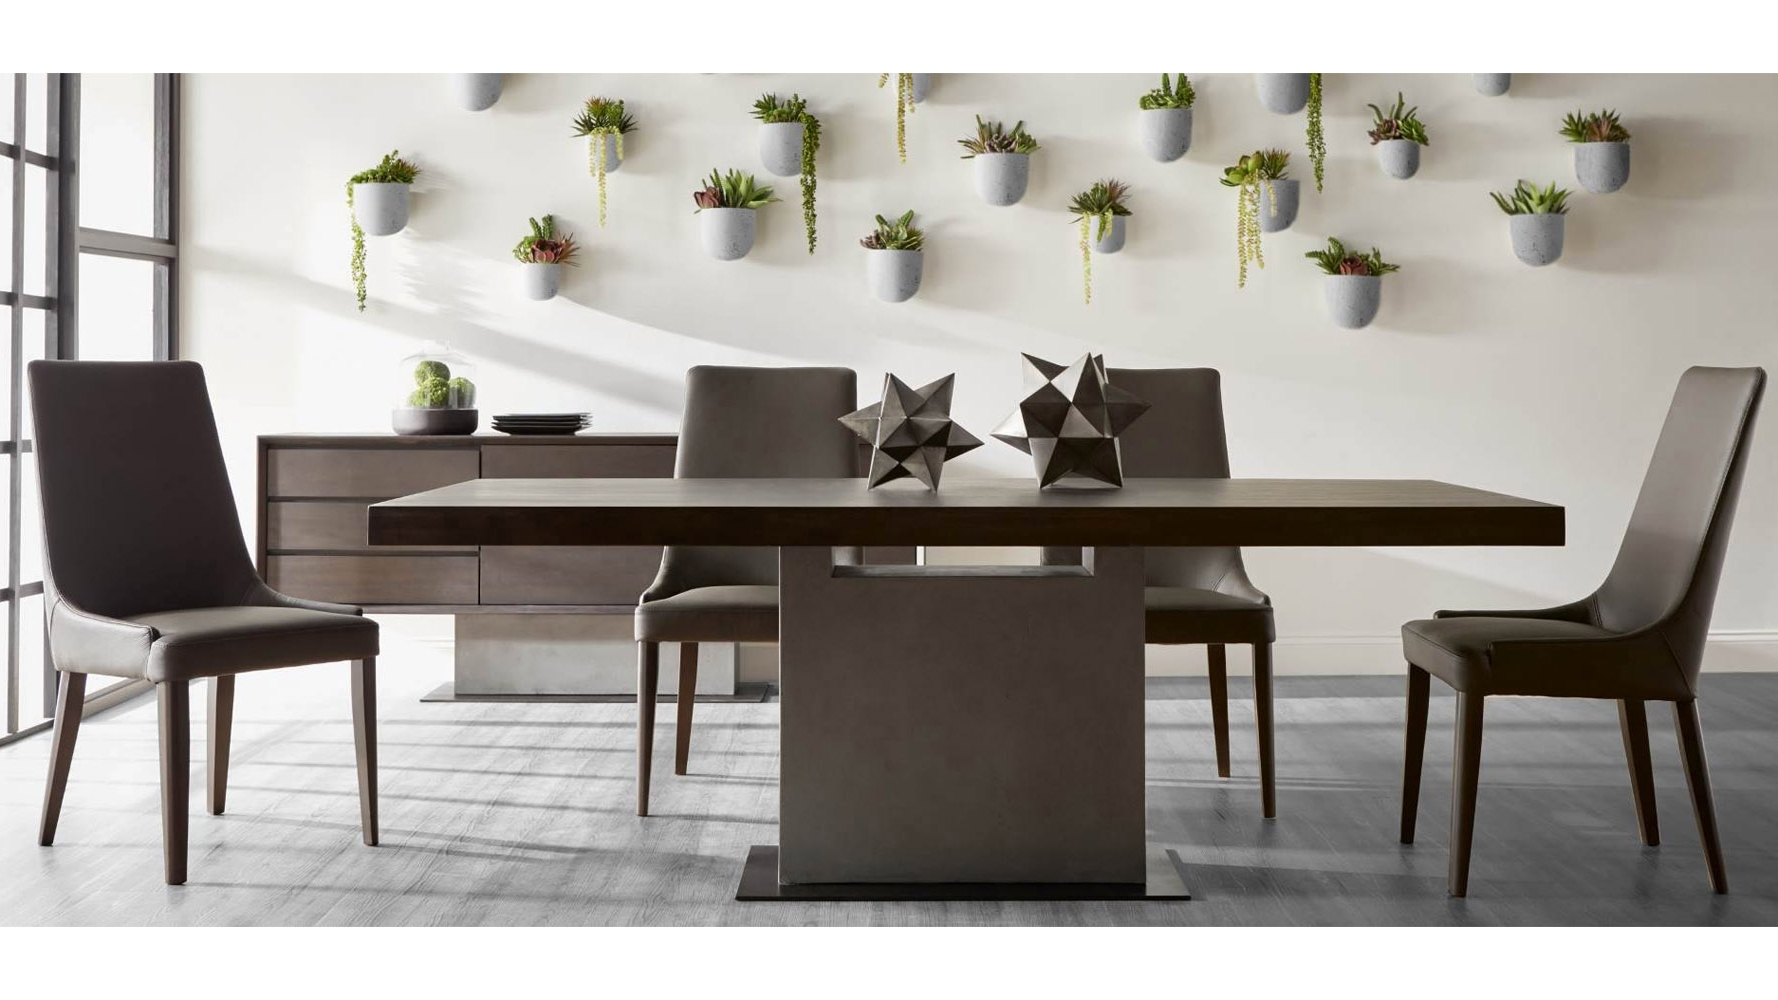 Encino Espresso Rectangular Dining Table - Dining Tables Ideas inside Fashionable Lindy Espresso Rectangle Dining Tables